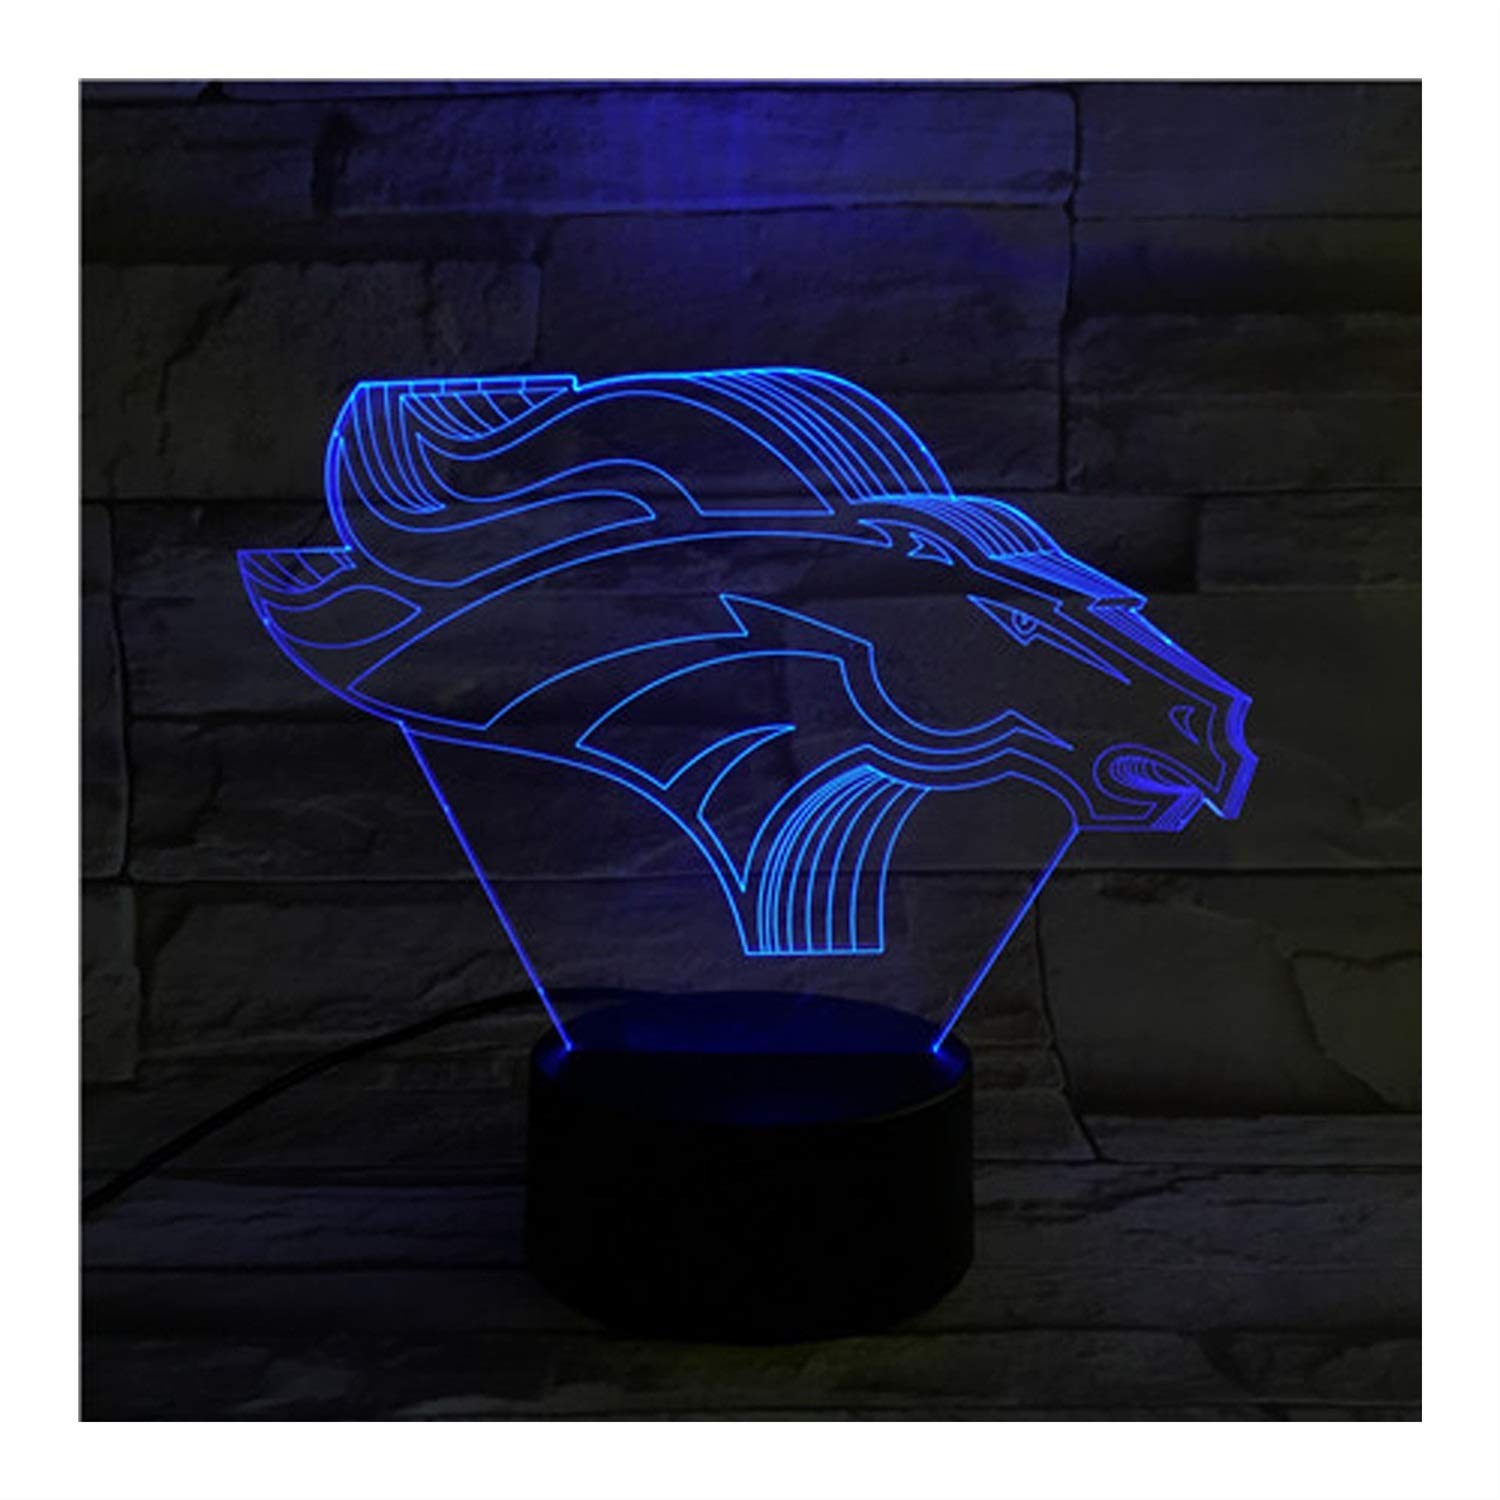 KMDB Denver Broncos Light Illusion Lamp Bedside Table Lamp, 7 Colors Changing Touch Switch Desk Decoration Lamps Birthday with Acrylic Flat & ABS Base & USB Cable